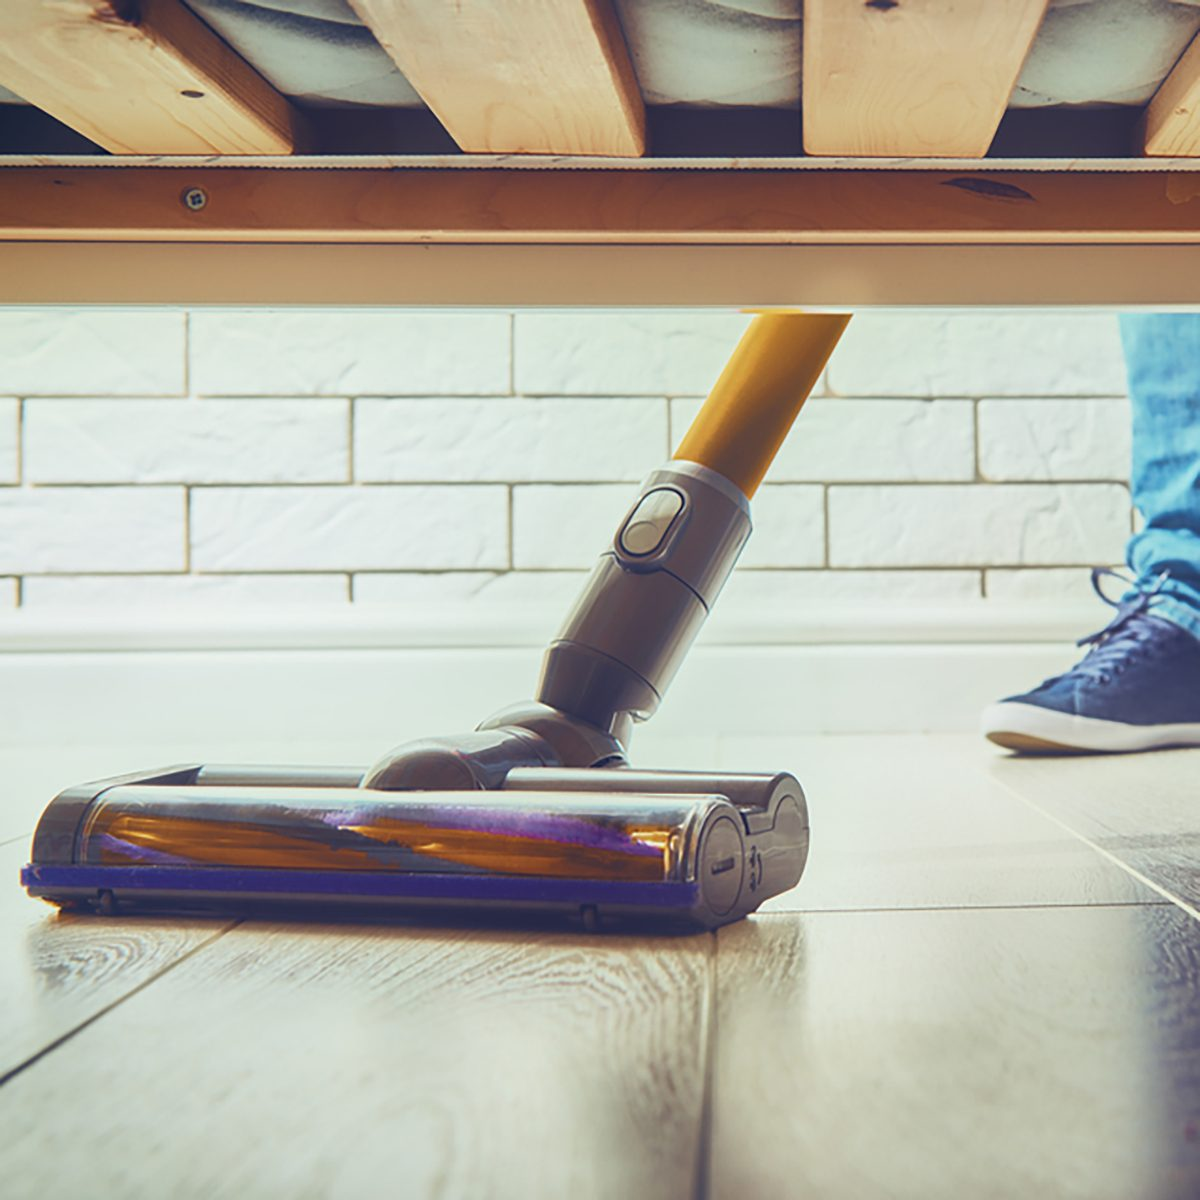 woman makes cleaning the house. people vacuums the floor